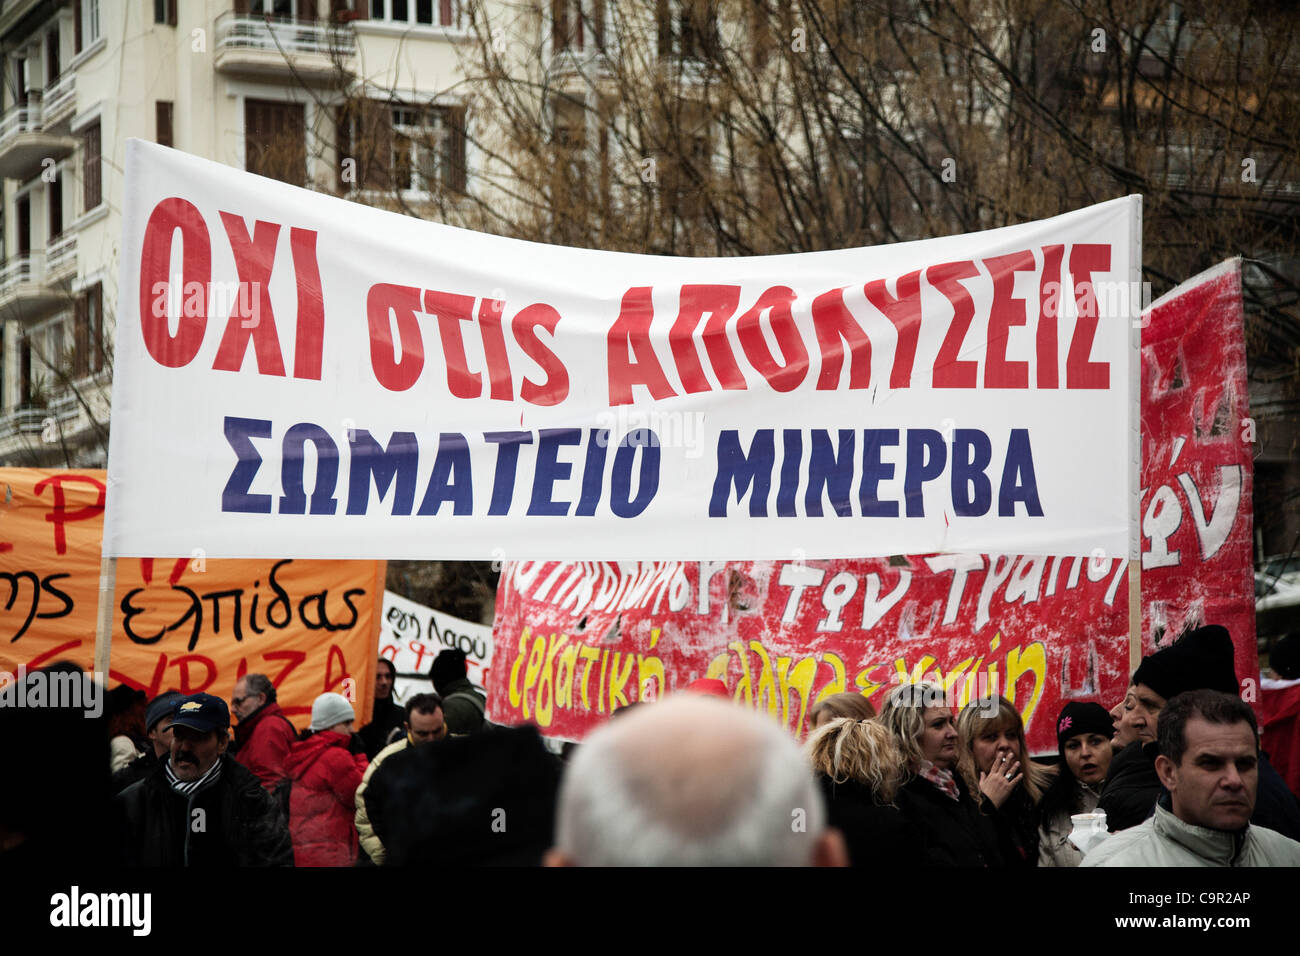 Not on redundancies. 48-hour nationwide strike. Protests in Thessaloniki against the new stringent economic measures. - Stock Image